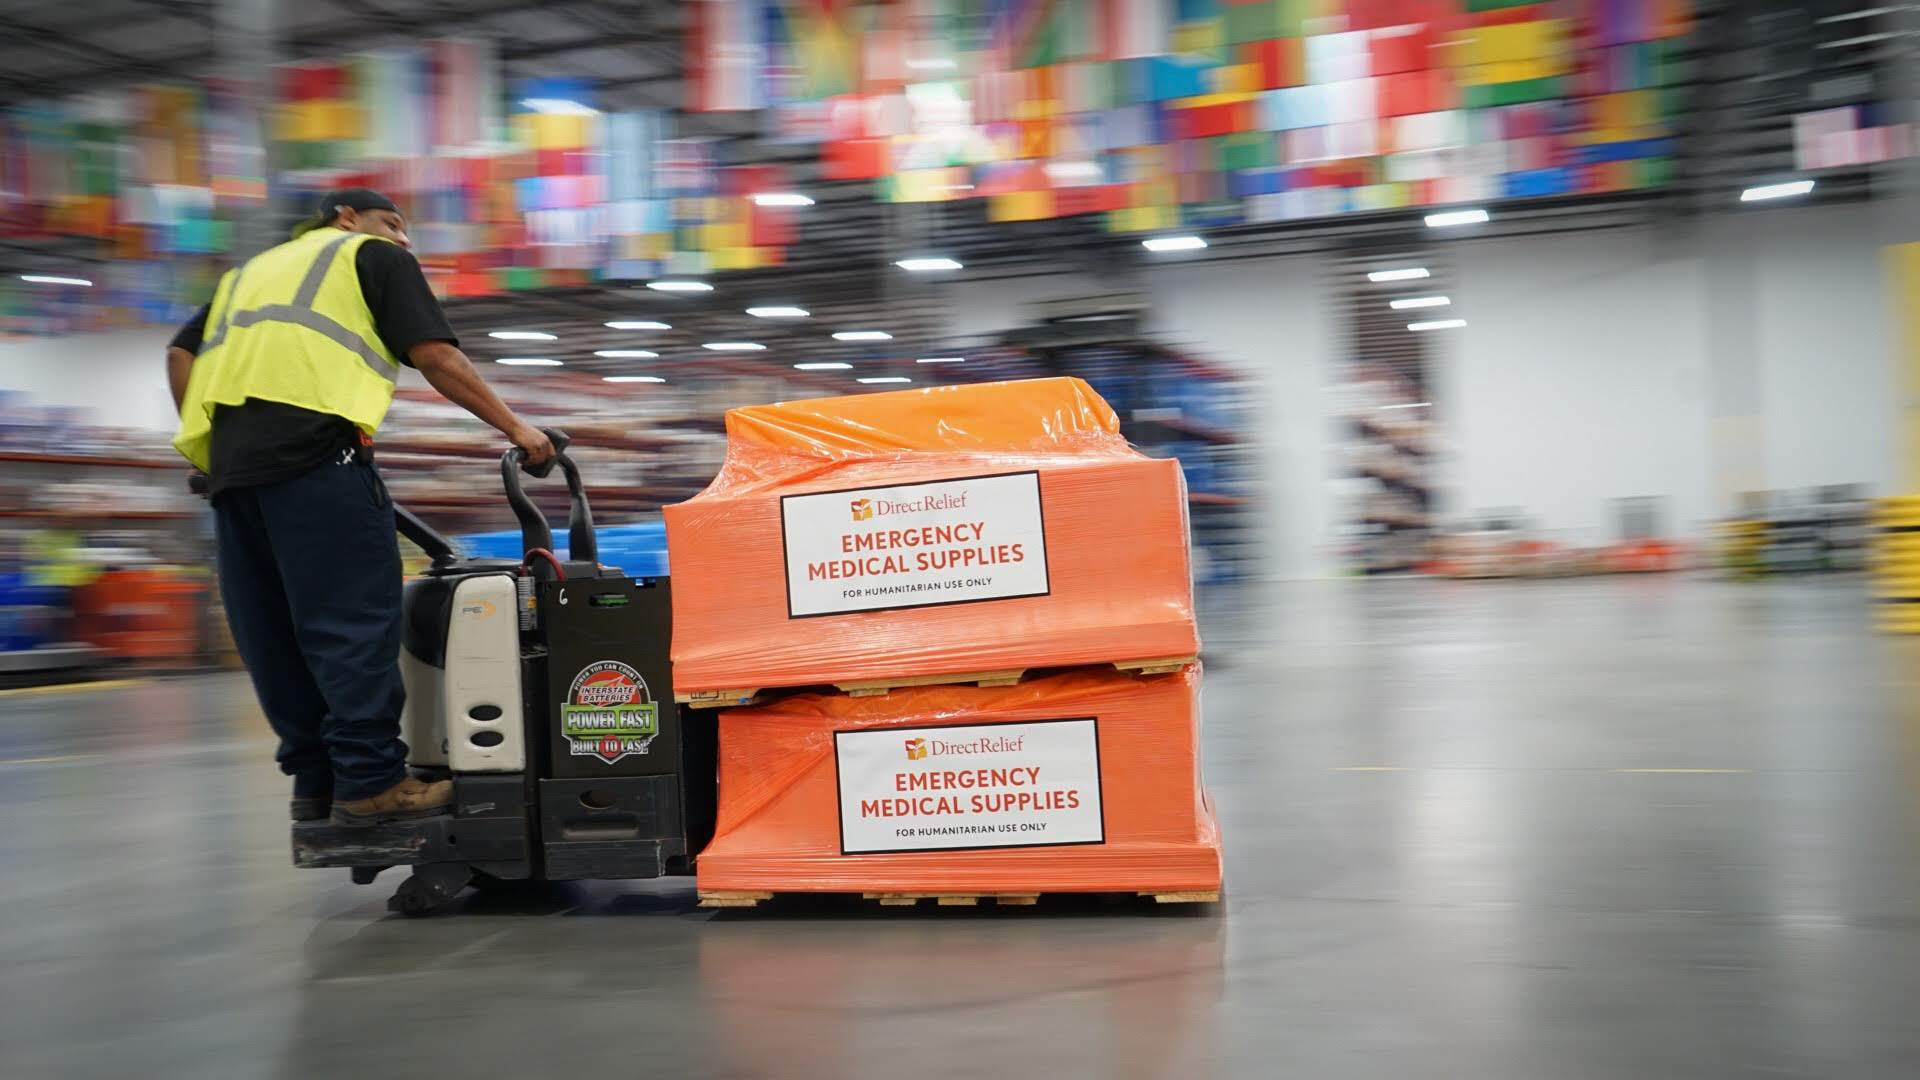 Direct Relief staff prepare medical supplies for shipment from Direct Relief's Santa Barbara warehouse to Saipan, Northern Mariana Islands, after Super Typhoon Yutu damaged many homes and health facilities in October 2018. (Lara Cooper/Direct Relief)